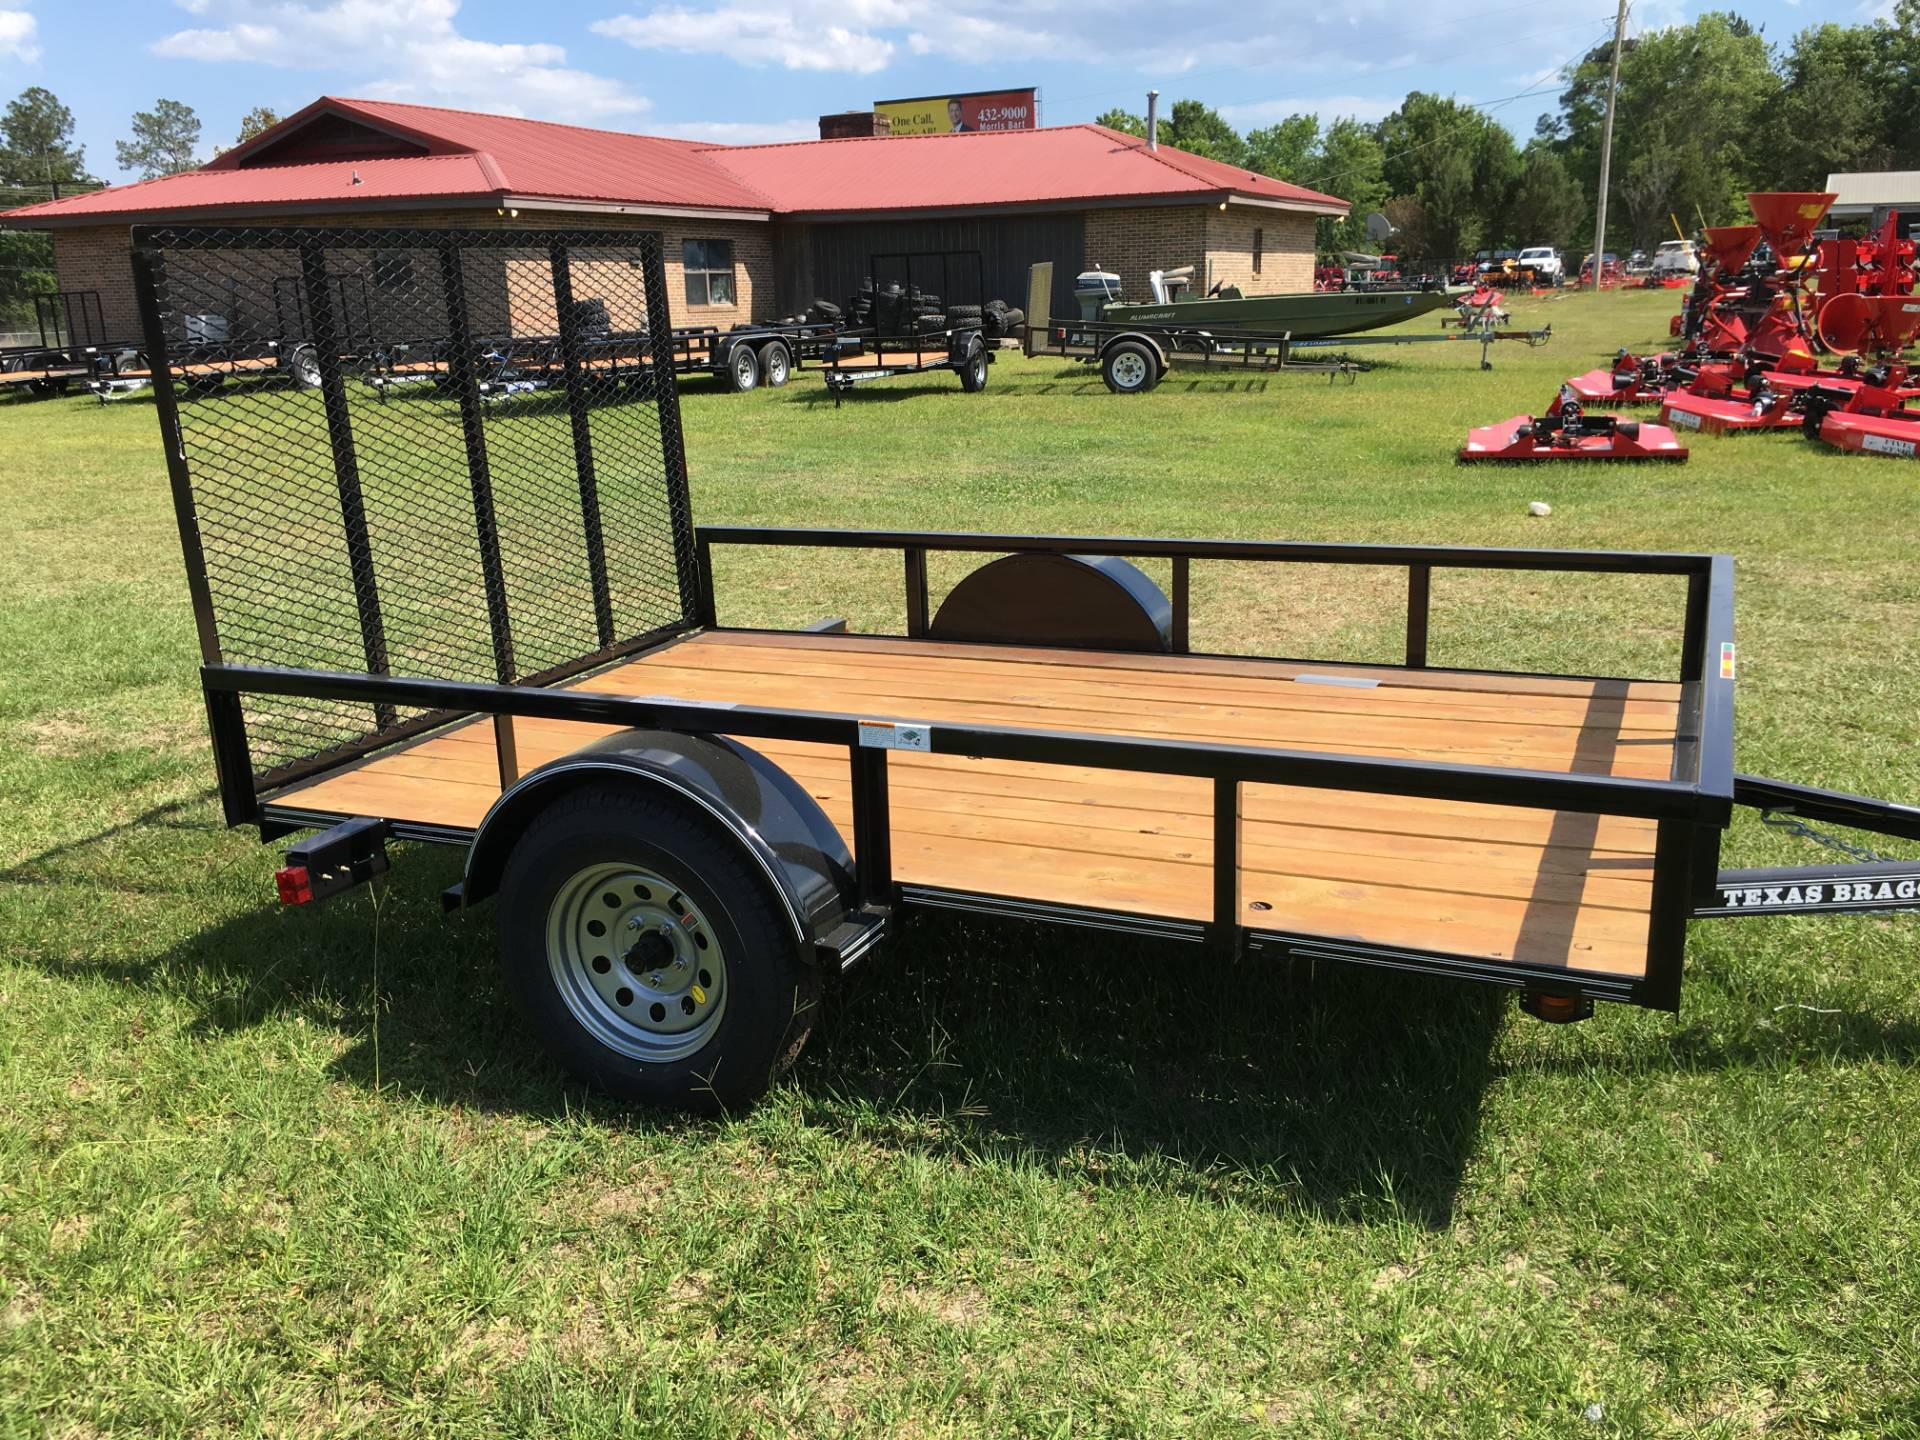 2018 Texas Bragg 6x10 LD, 4' Gate, Treated, LED in Saucier, Mississippi